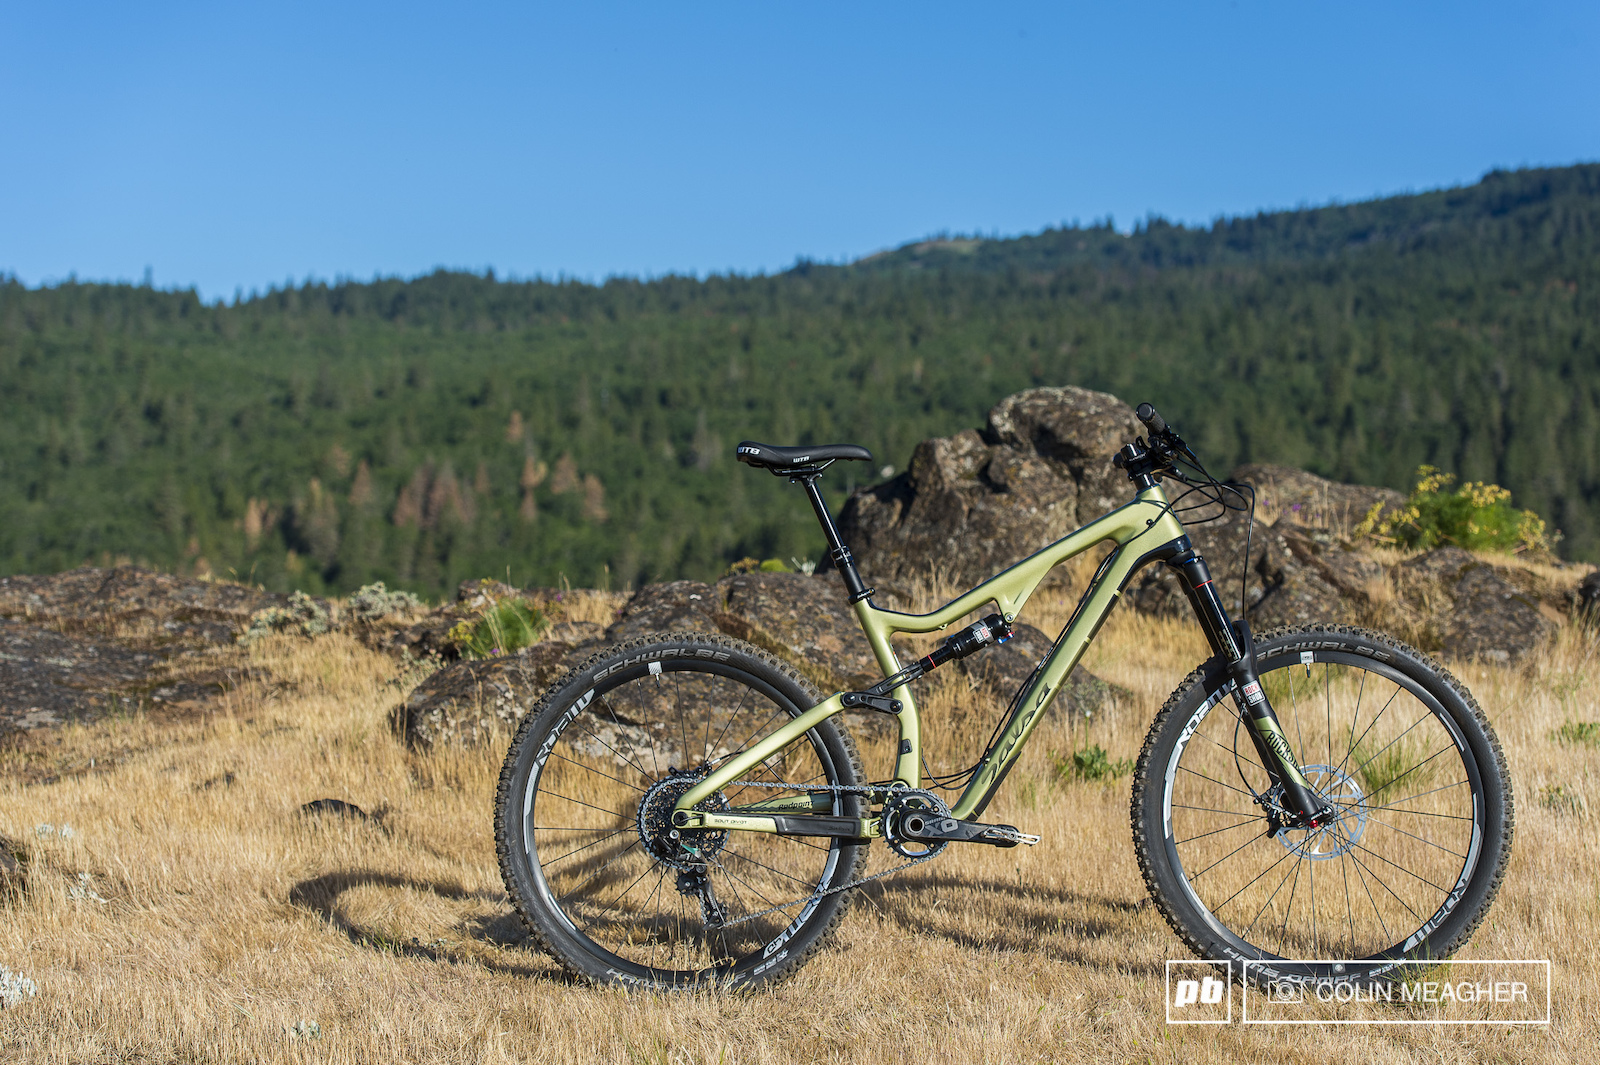 Vernon Felton testing bikes on the trails surrounding Hood River OR.